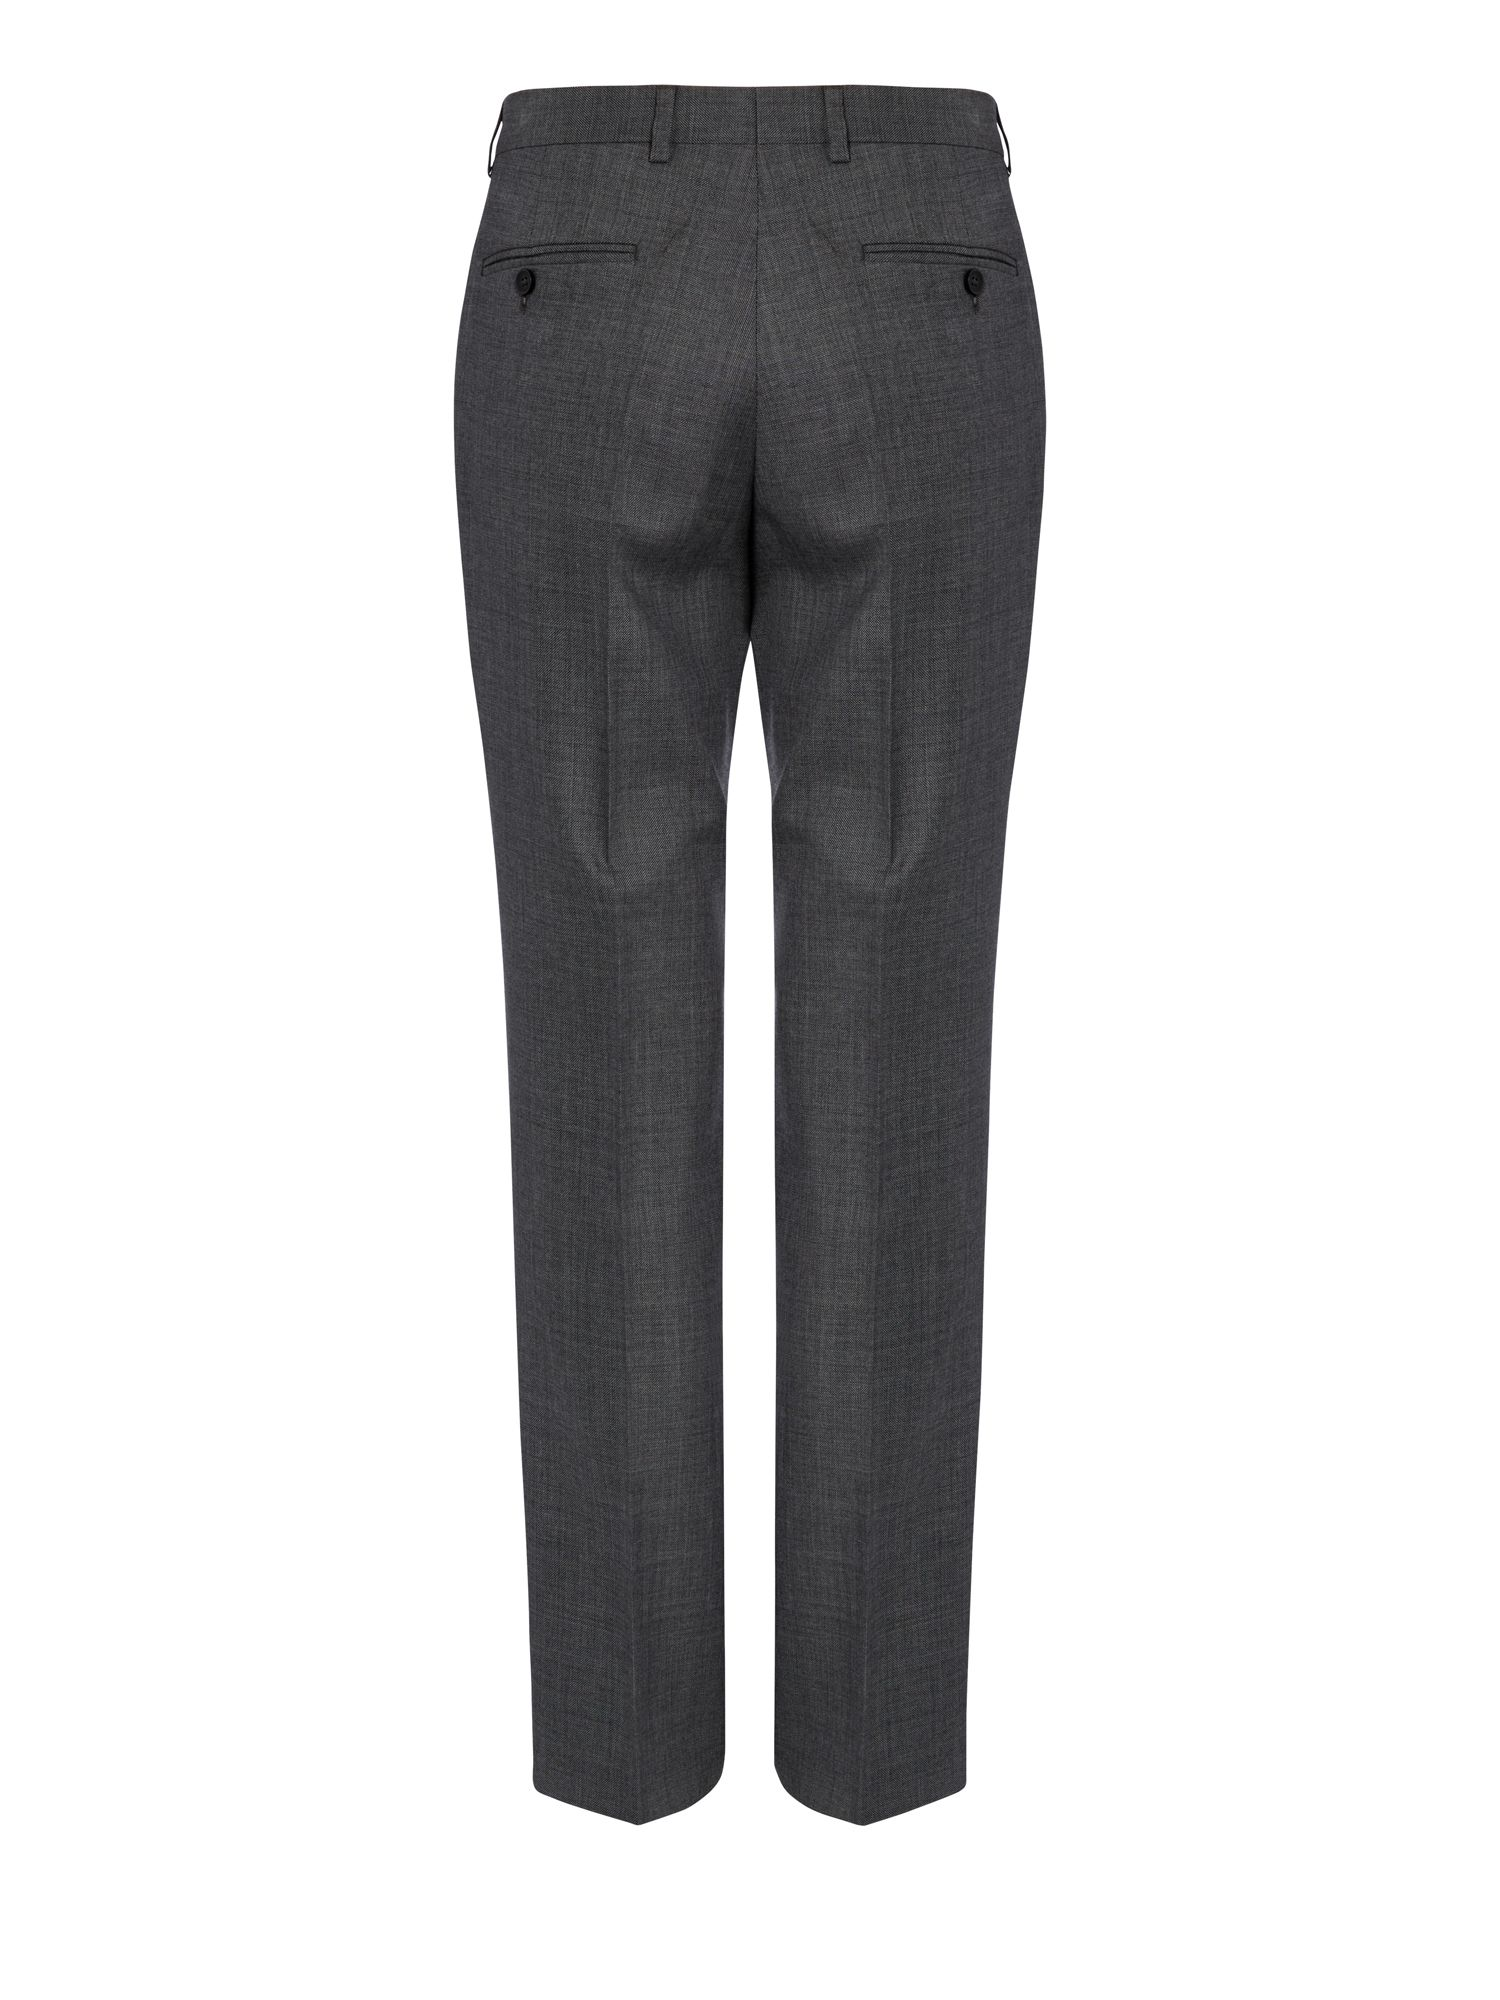 Sharkskin trousers